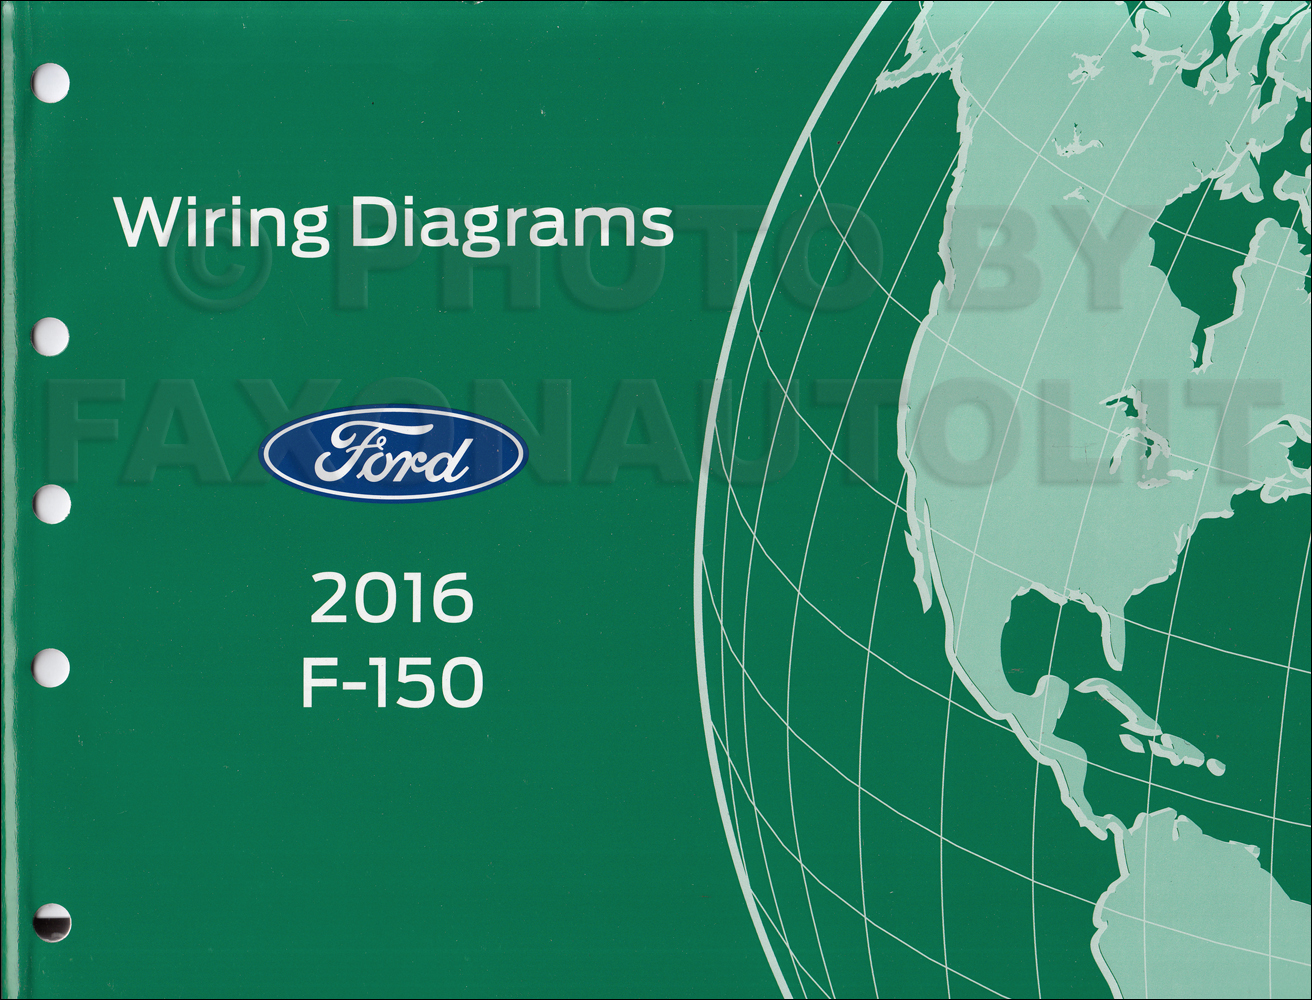 2016 ford f150 wiring diagrams fender strat diagram seymour duncan f 150 manual original